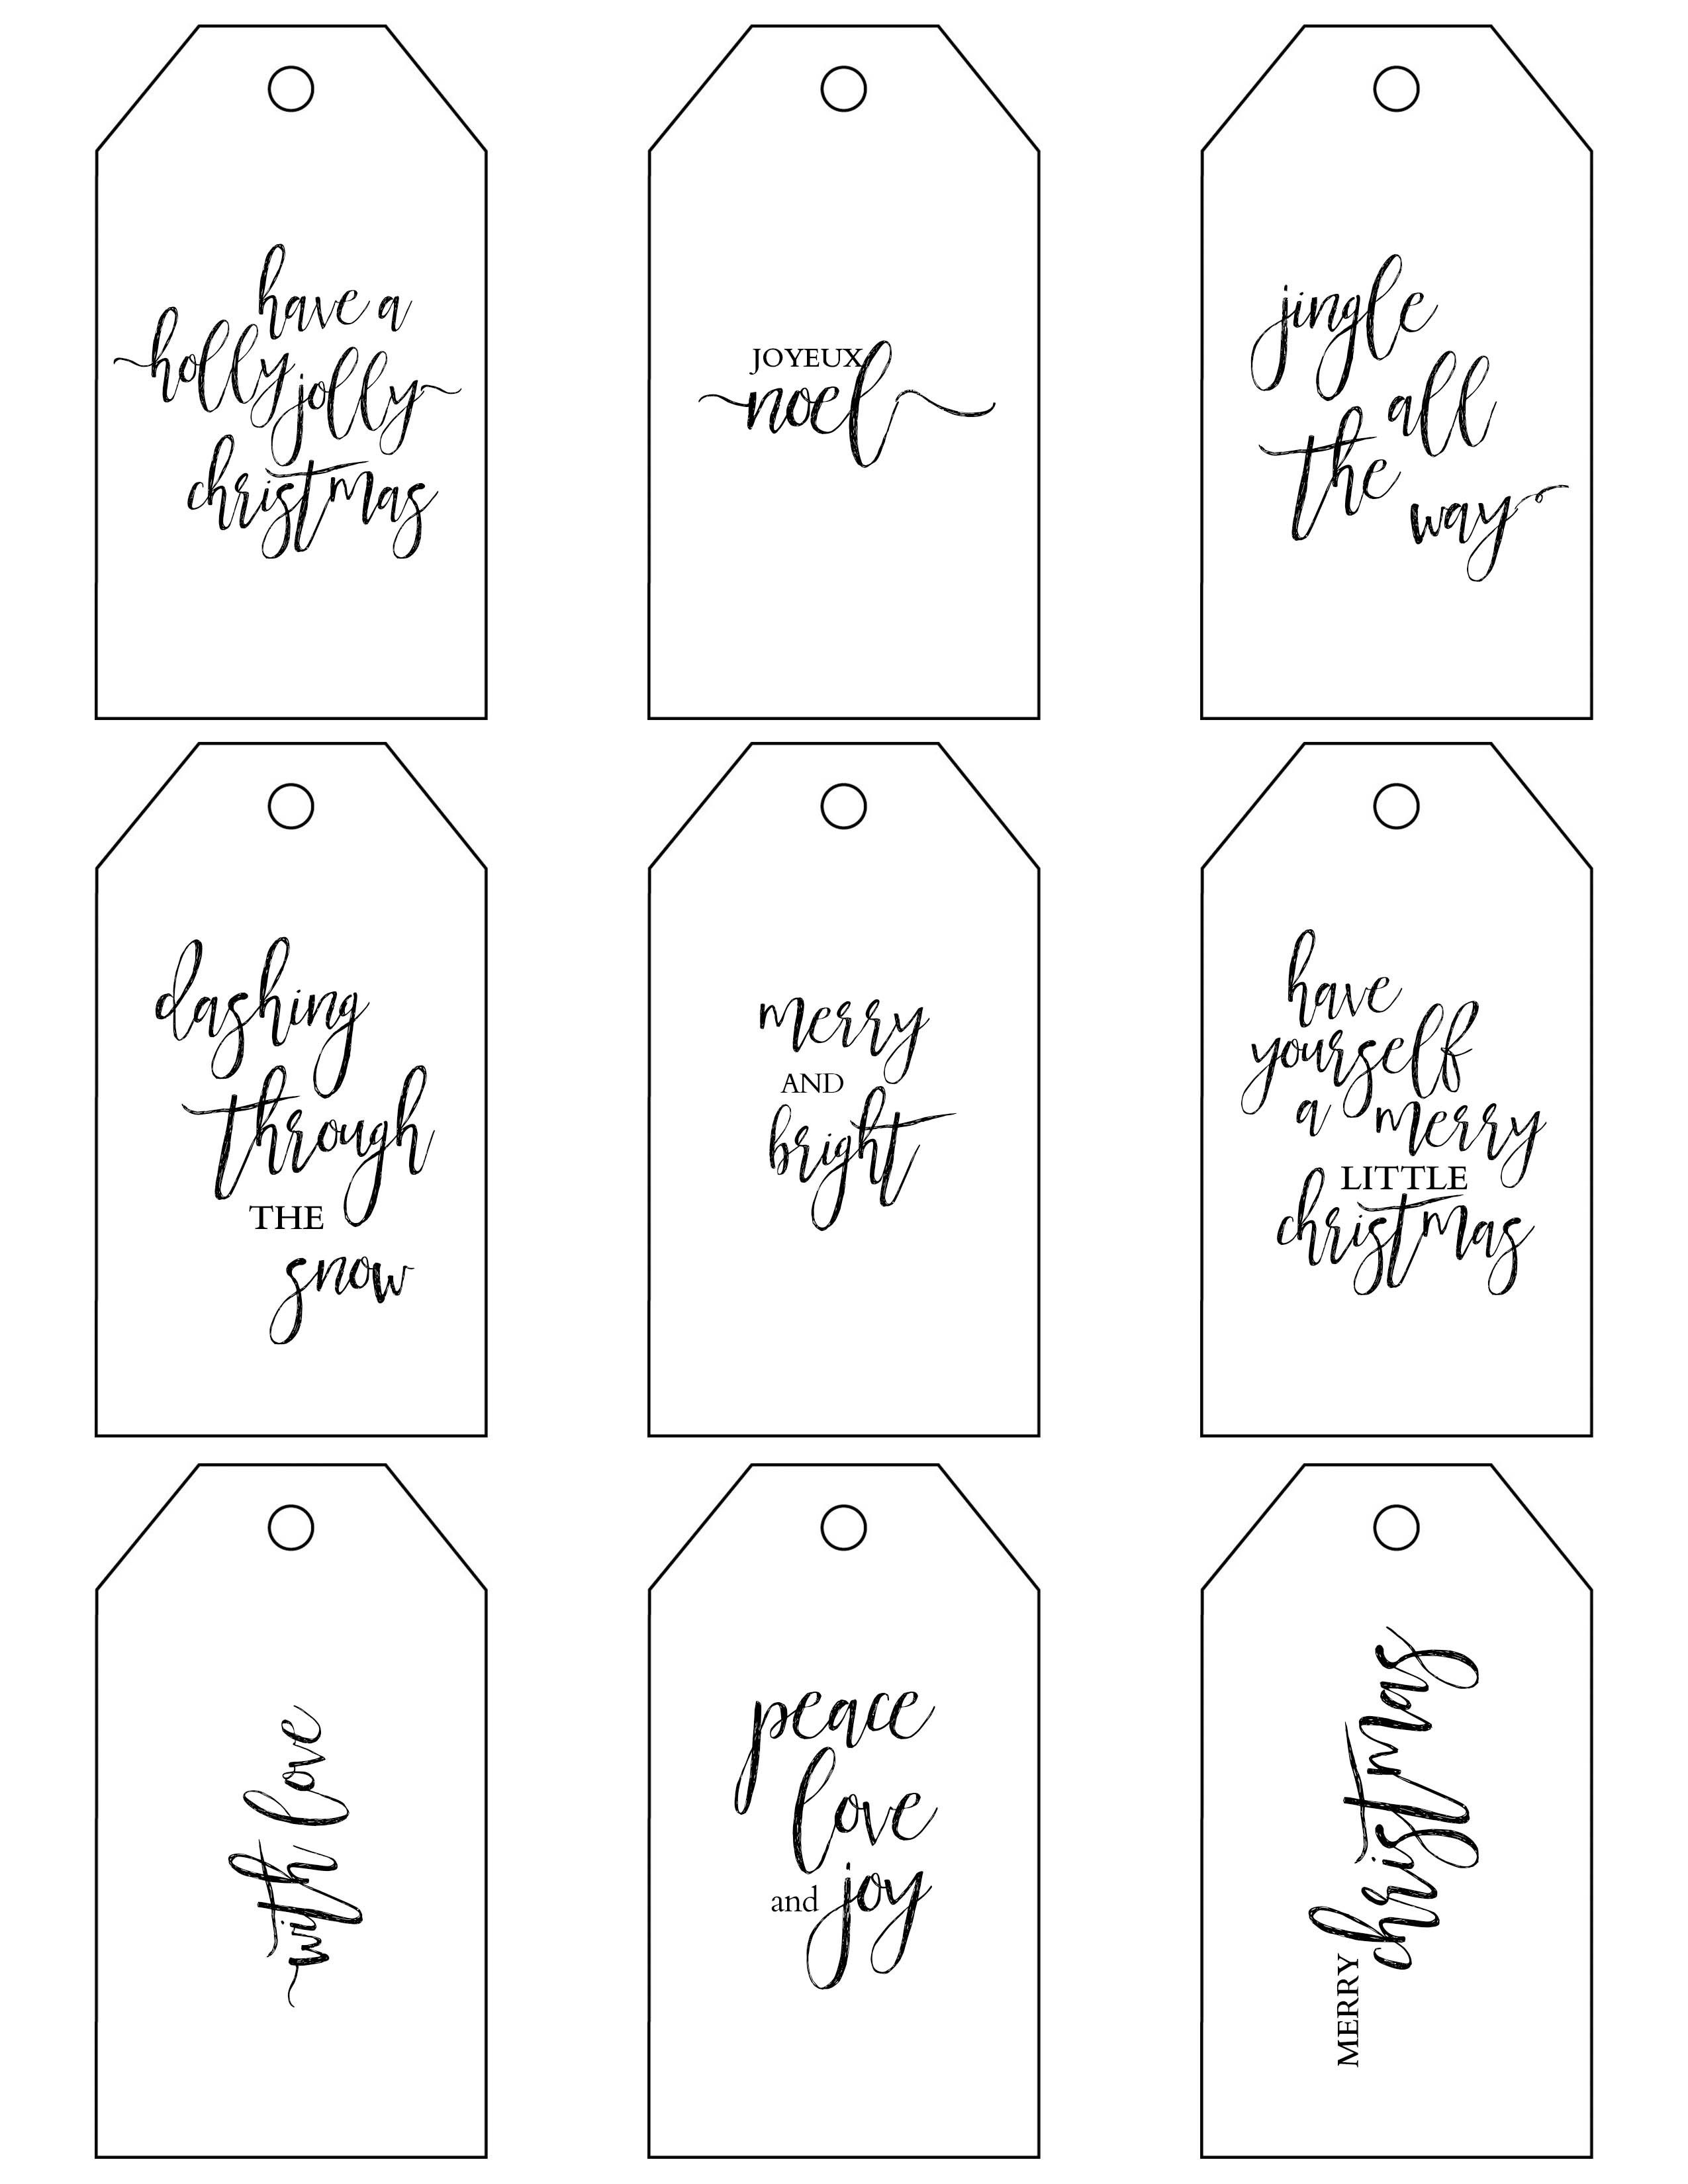 Printable Christmas Gift Tags Make Holiday Wrapping Simple - Free Printable Gift Tags